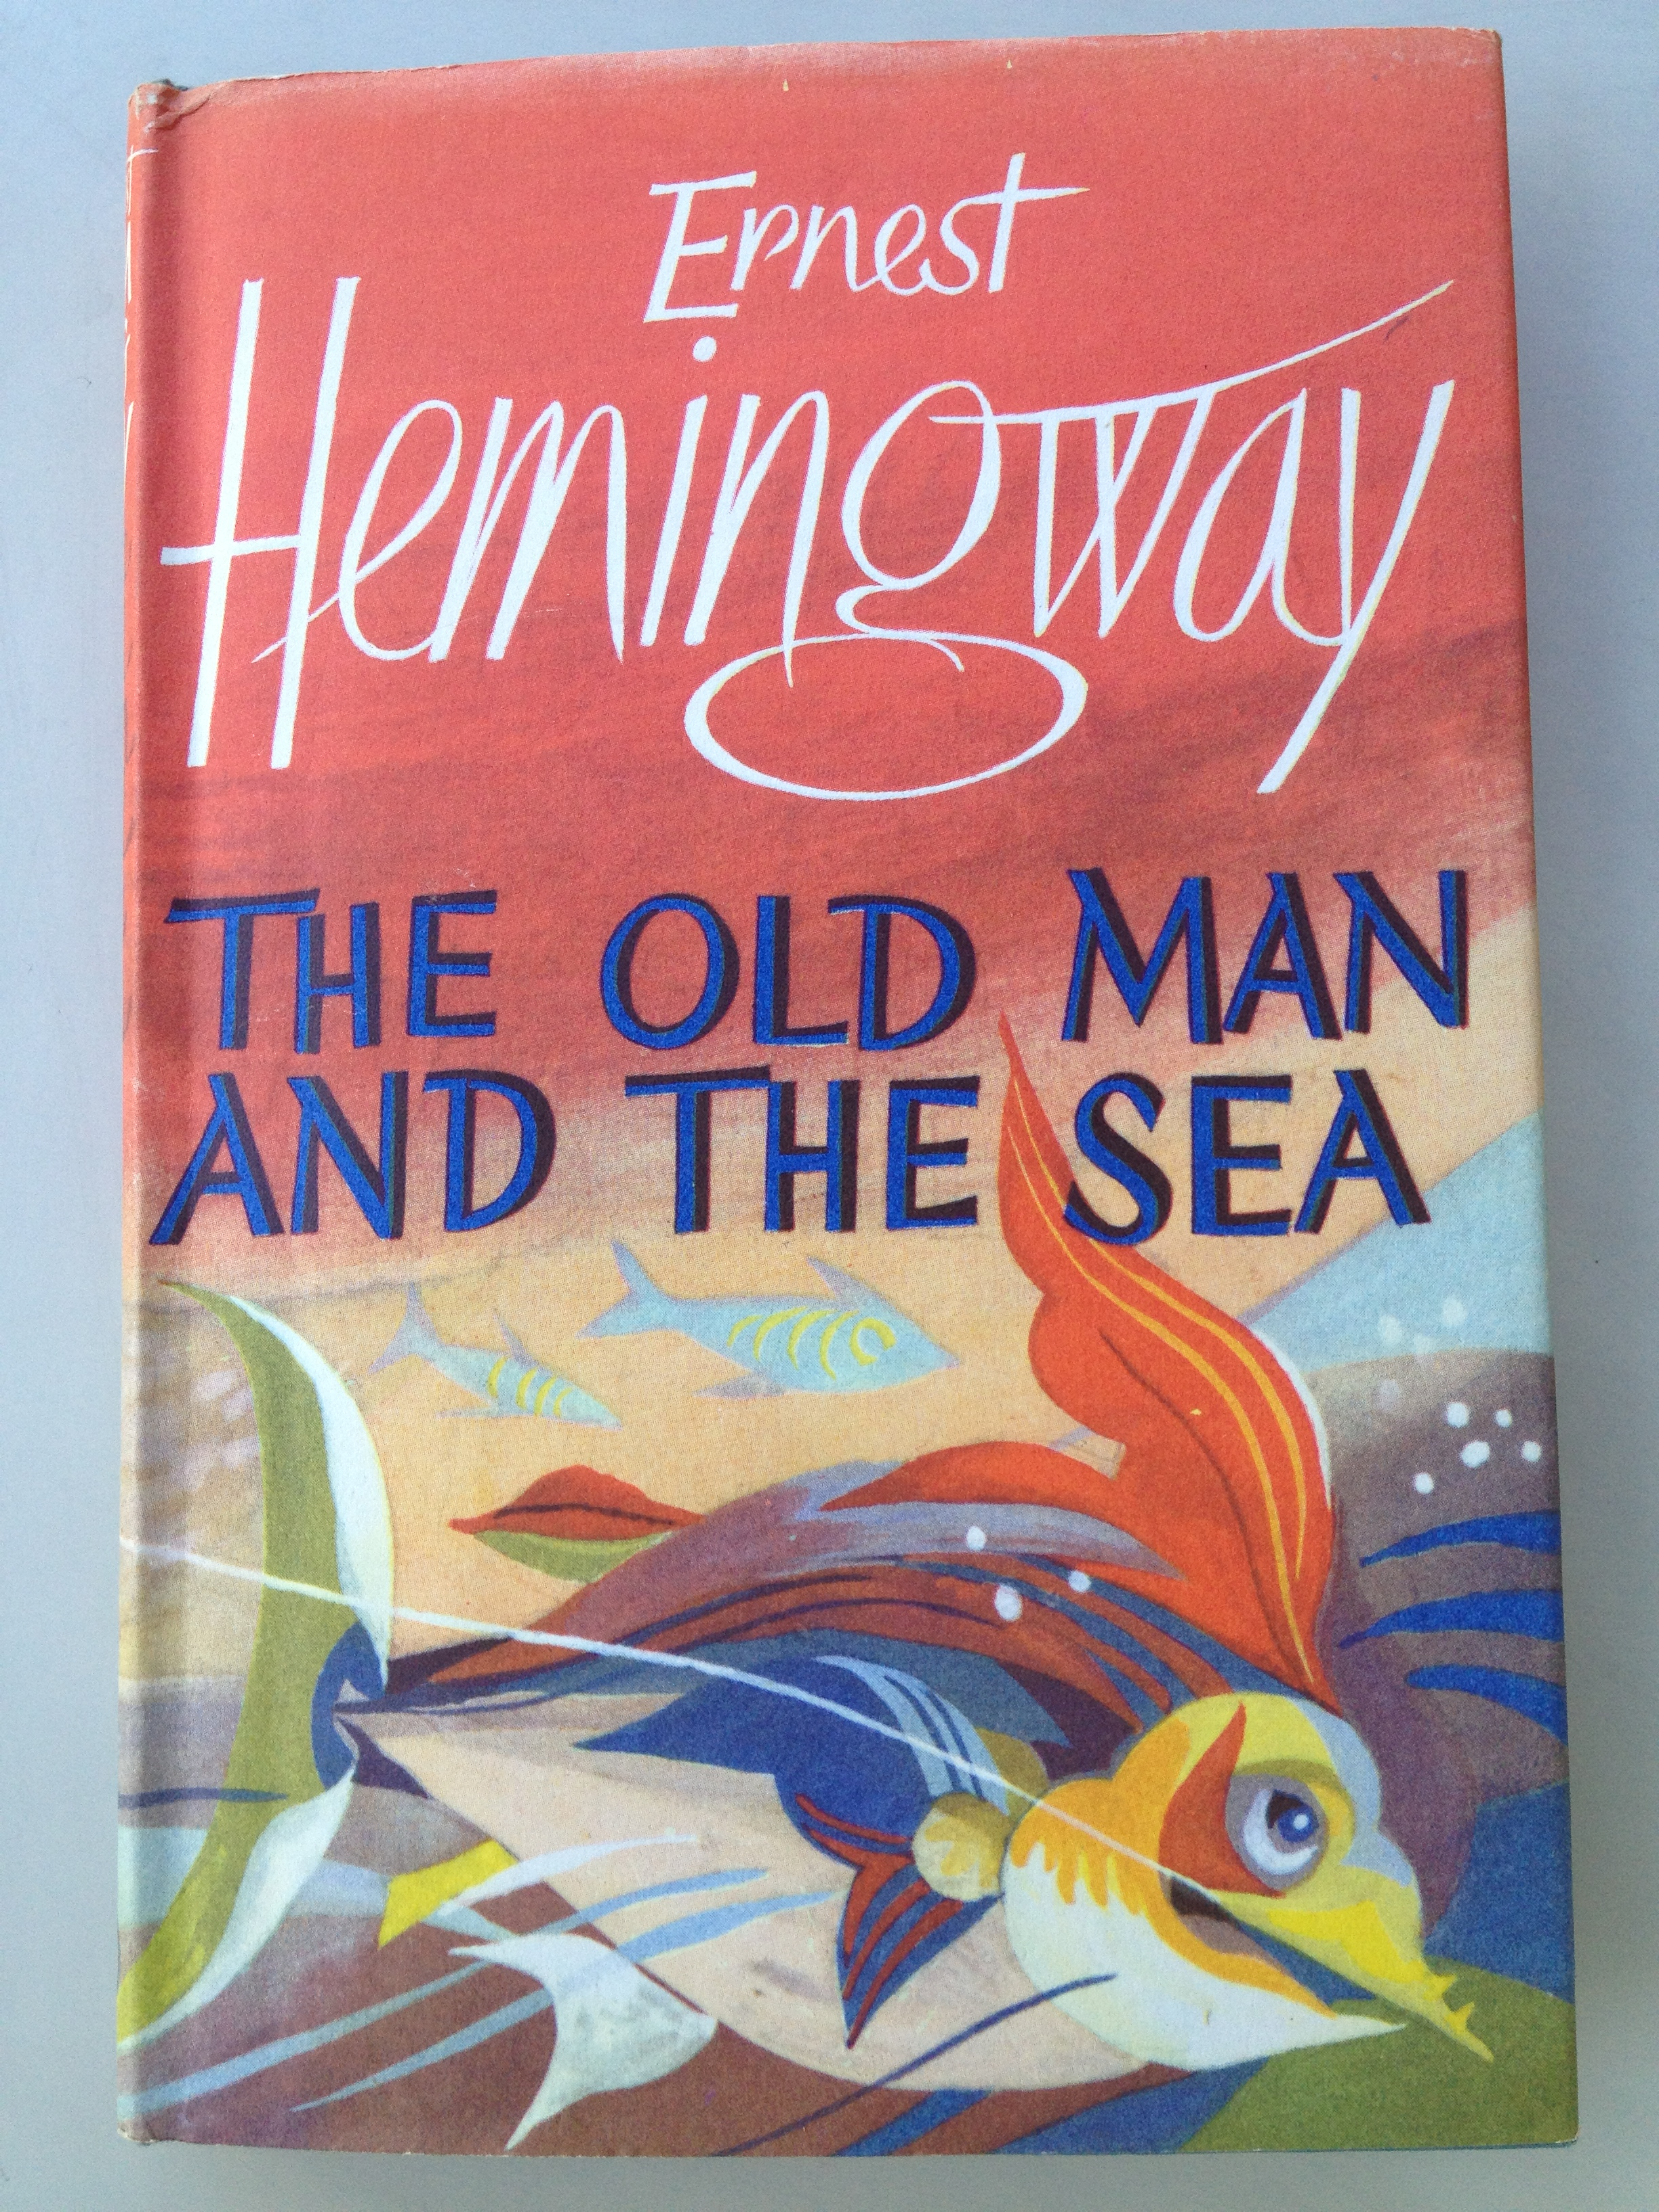 an analysis of perseverance in the old man and the sea by ernest hemingway Essays - largest database of quality sample essays and research papers on old man and the sea perseverance an analysis of ernest hemingway's the old man and the sea.